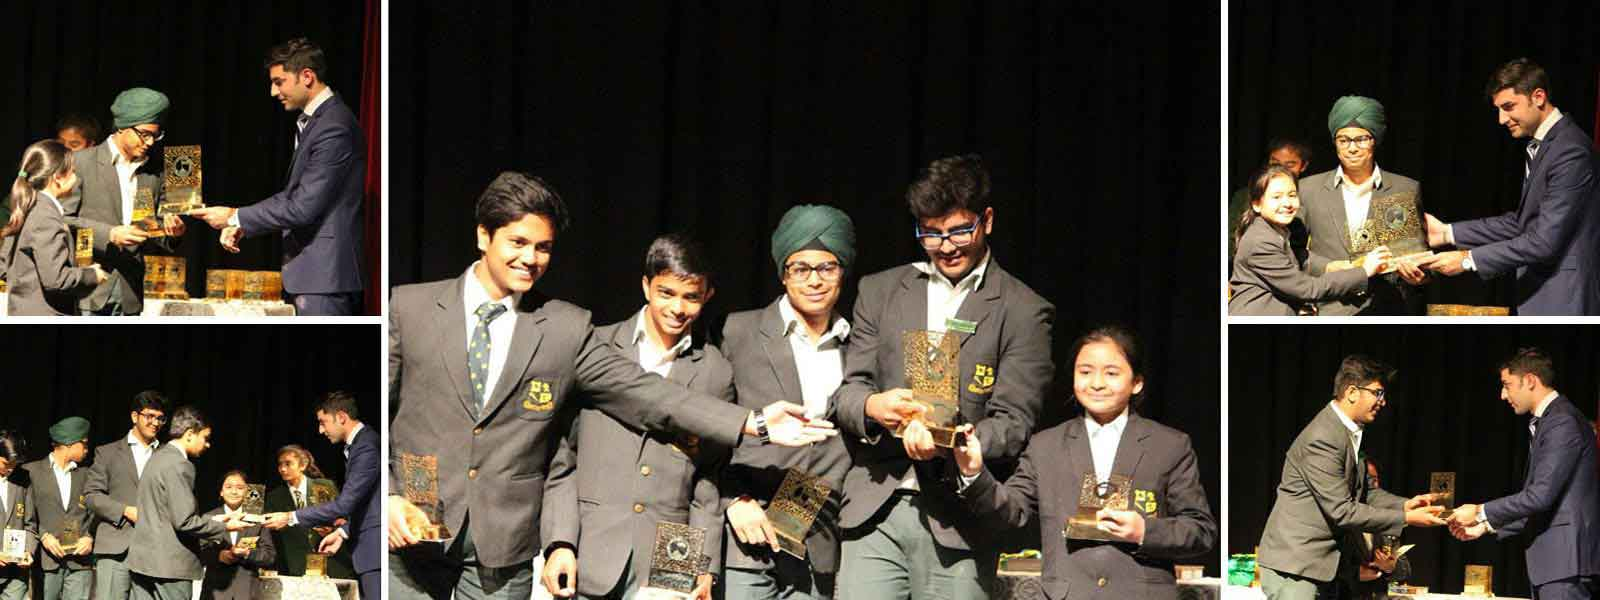 <span class='span1'>Winning the music in solo and fusion</span> </br></br><span class='span2'>at Wynberg Allen School, Mussoorie</span>